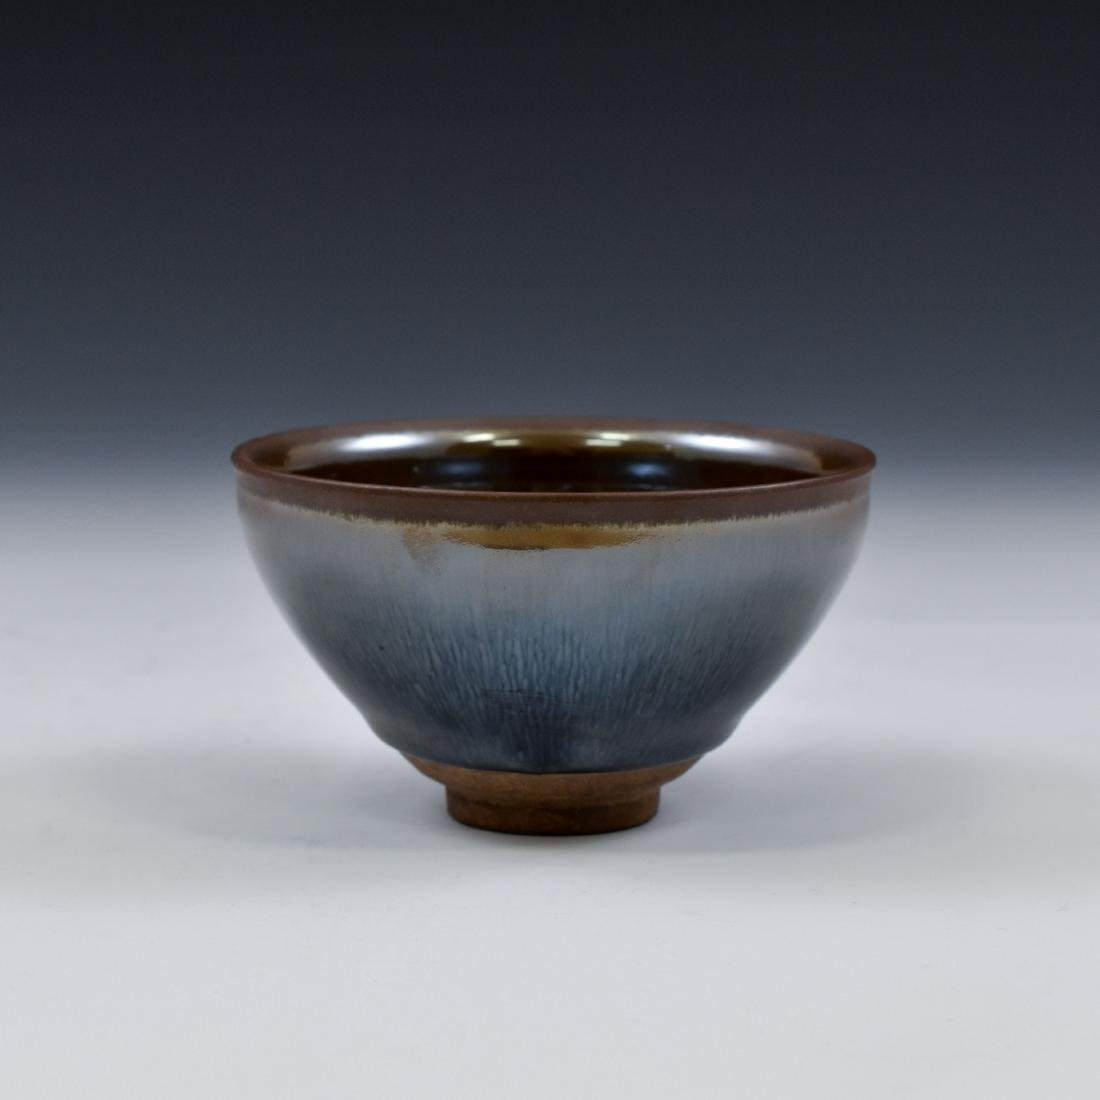 CHINESE JIAN WARE 'HARE FUR' TEA BOWL